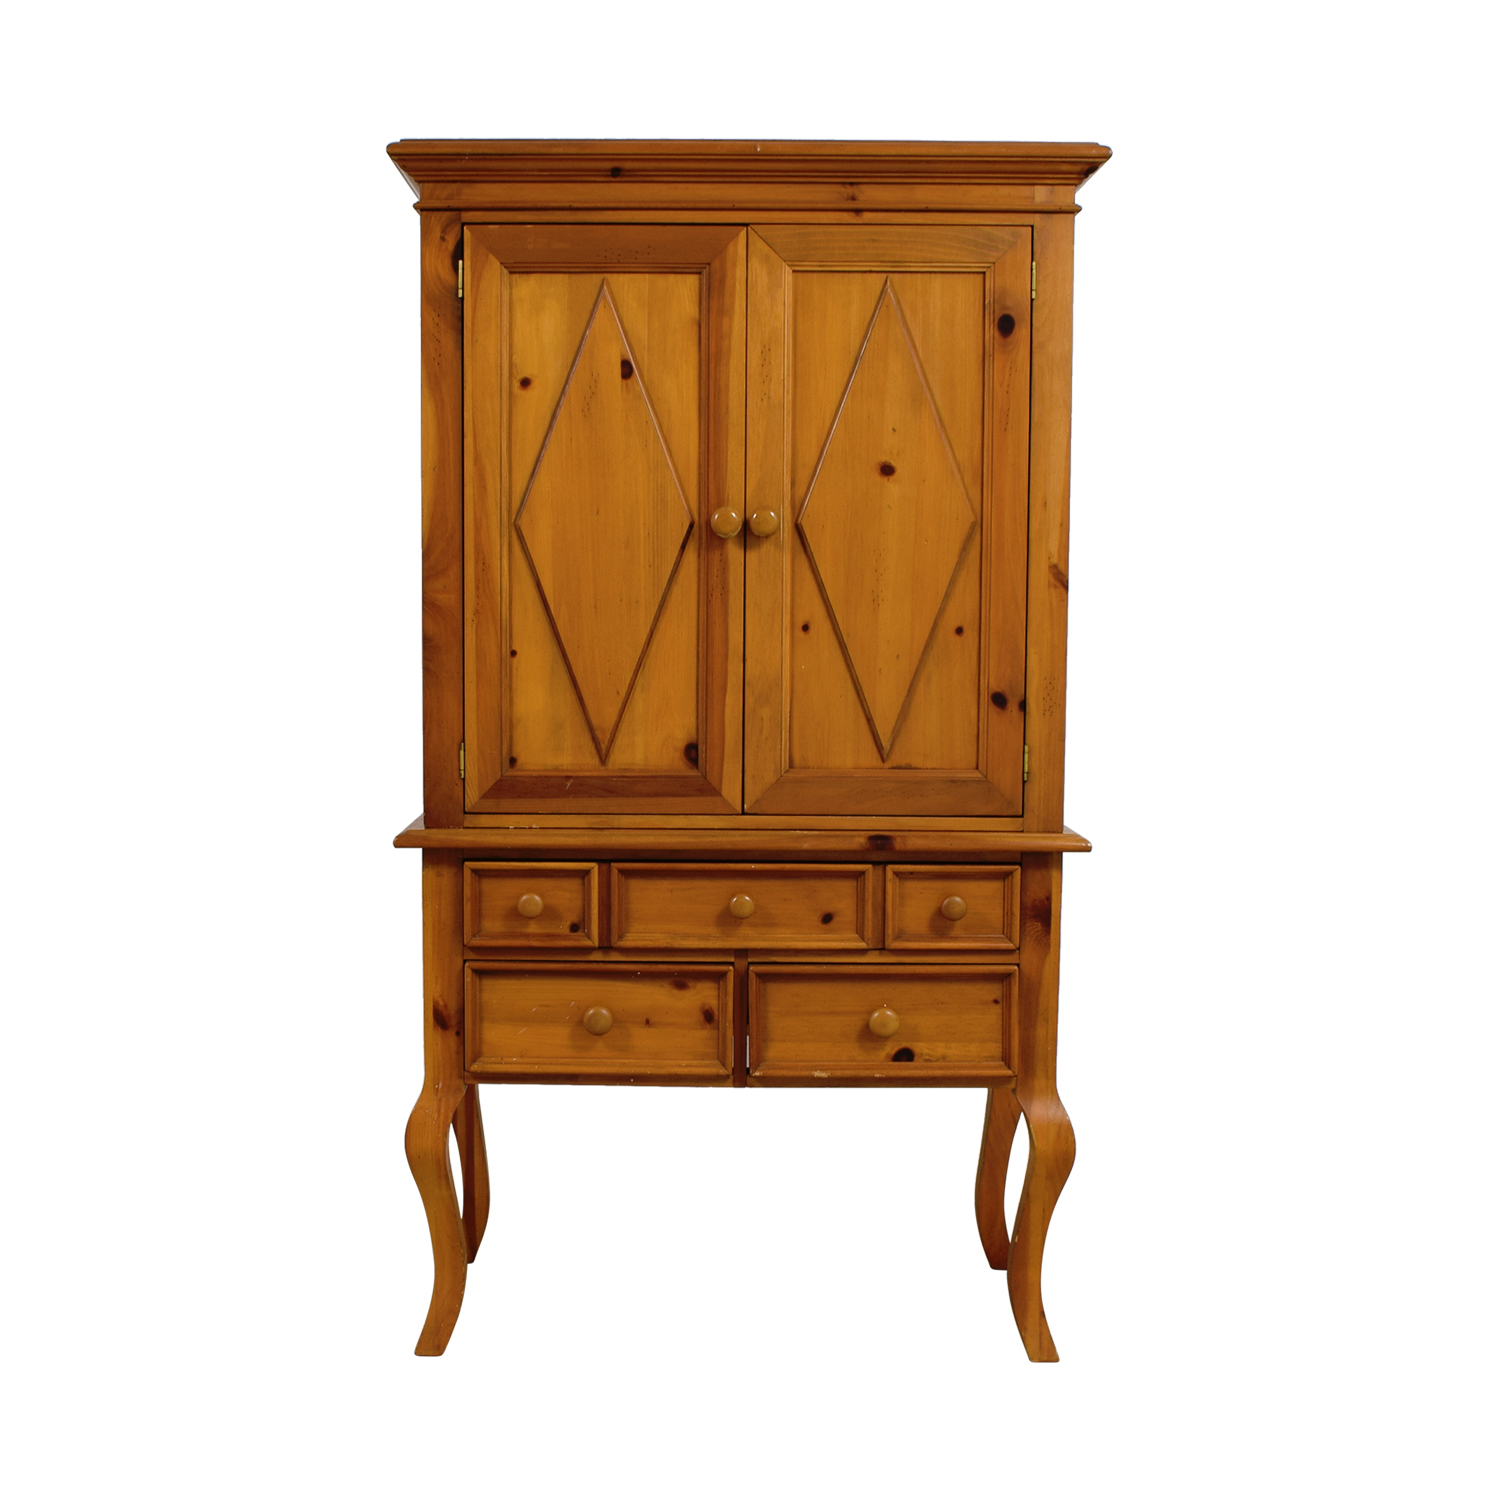 Broyhill Broyhill Wood Armoir with Shelves and Drawers on sale